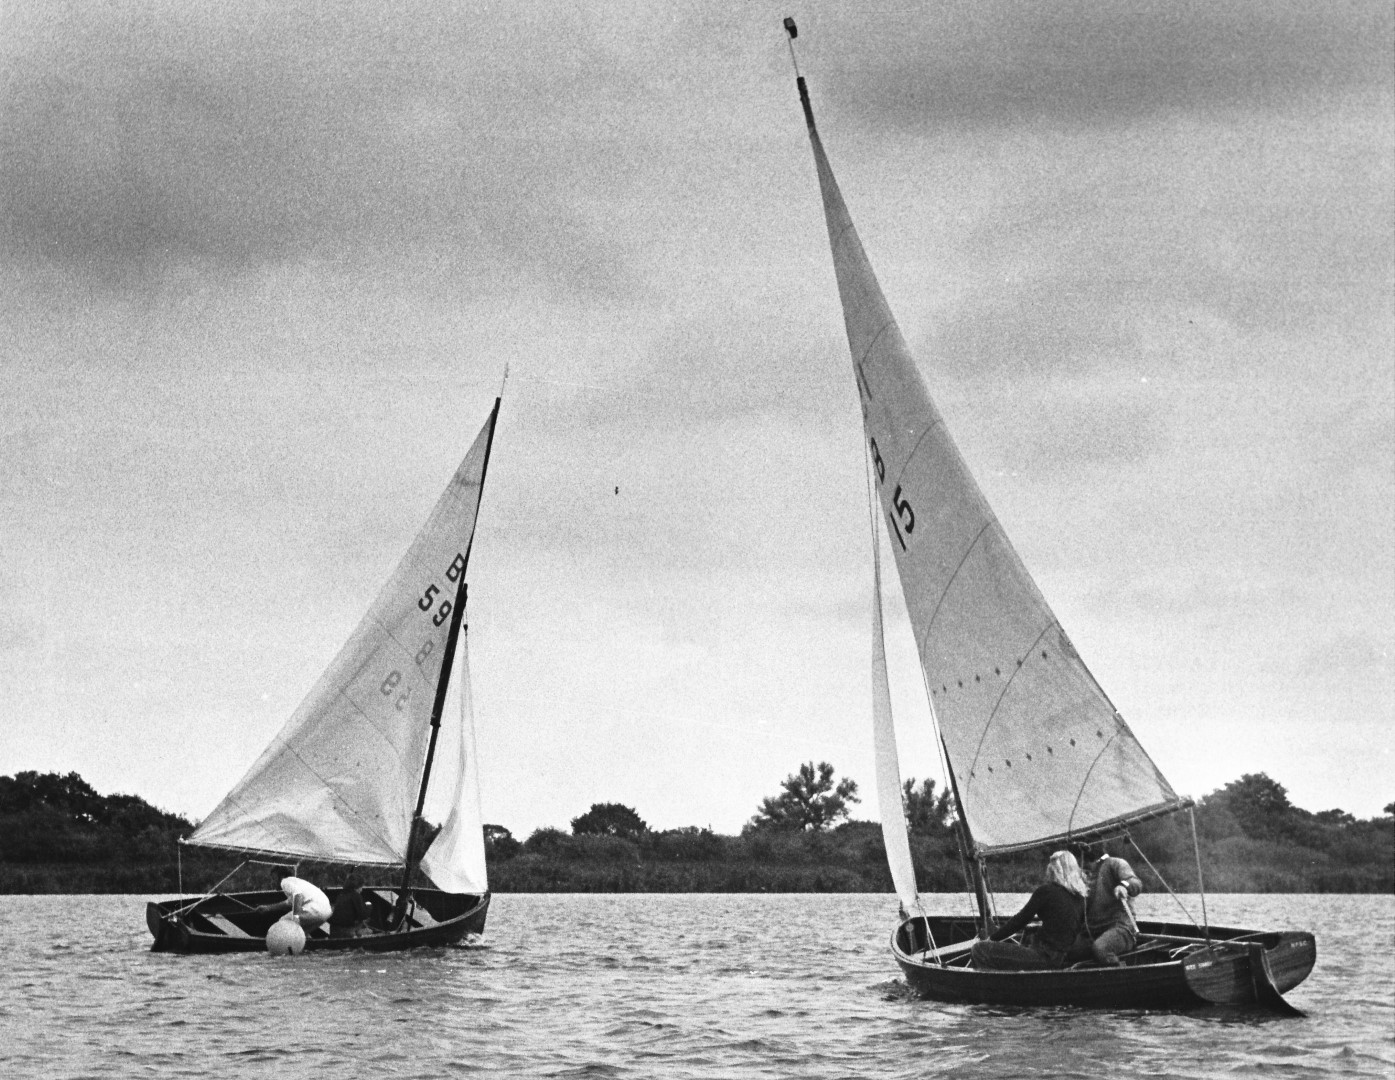 Norfolk Dinghy Championships 1975 - 1st. B59 M Broom 2nd. B15 D Mackley